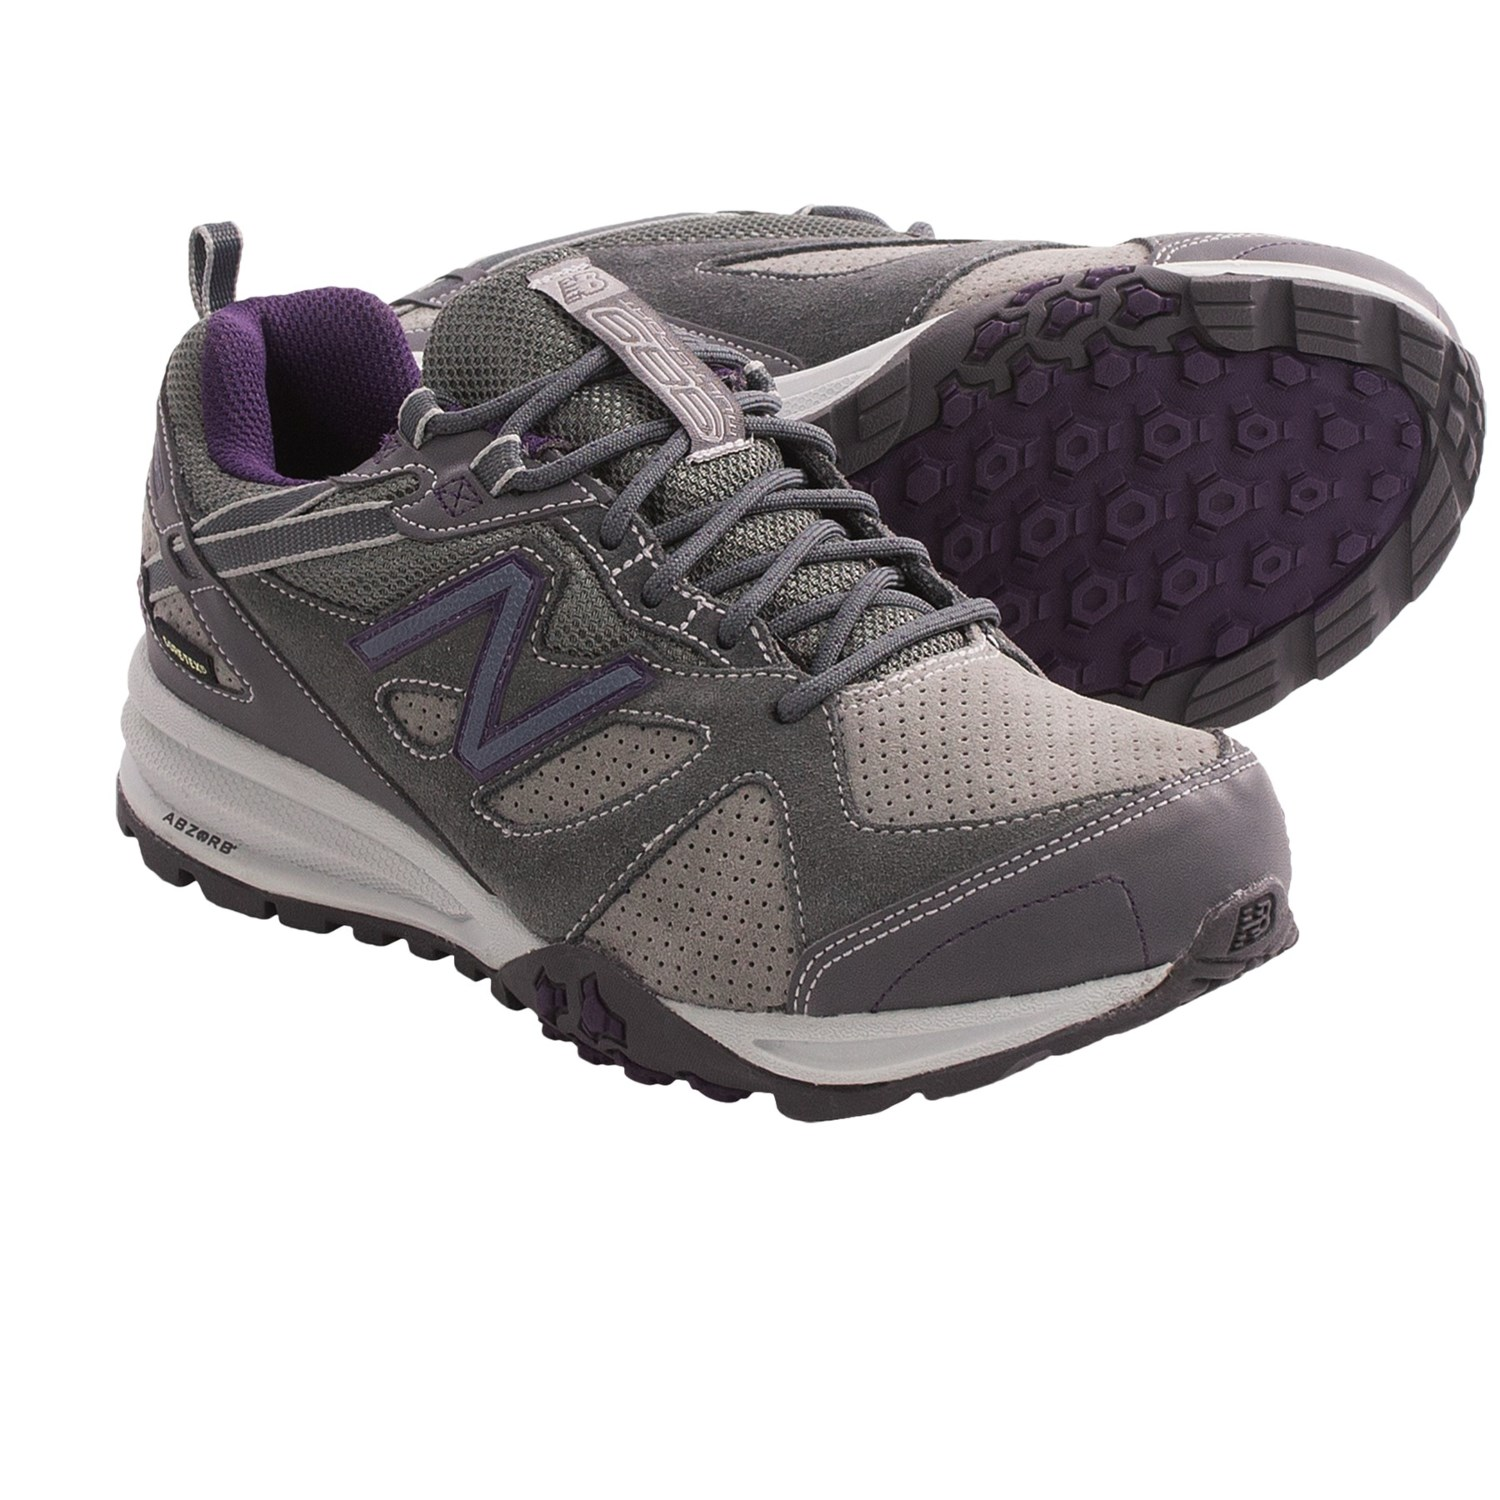 new balance 989 tex 174 hiking shoes waterproof for